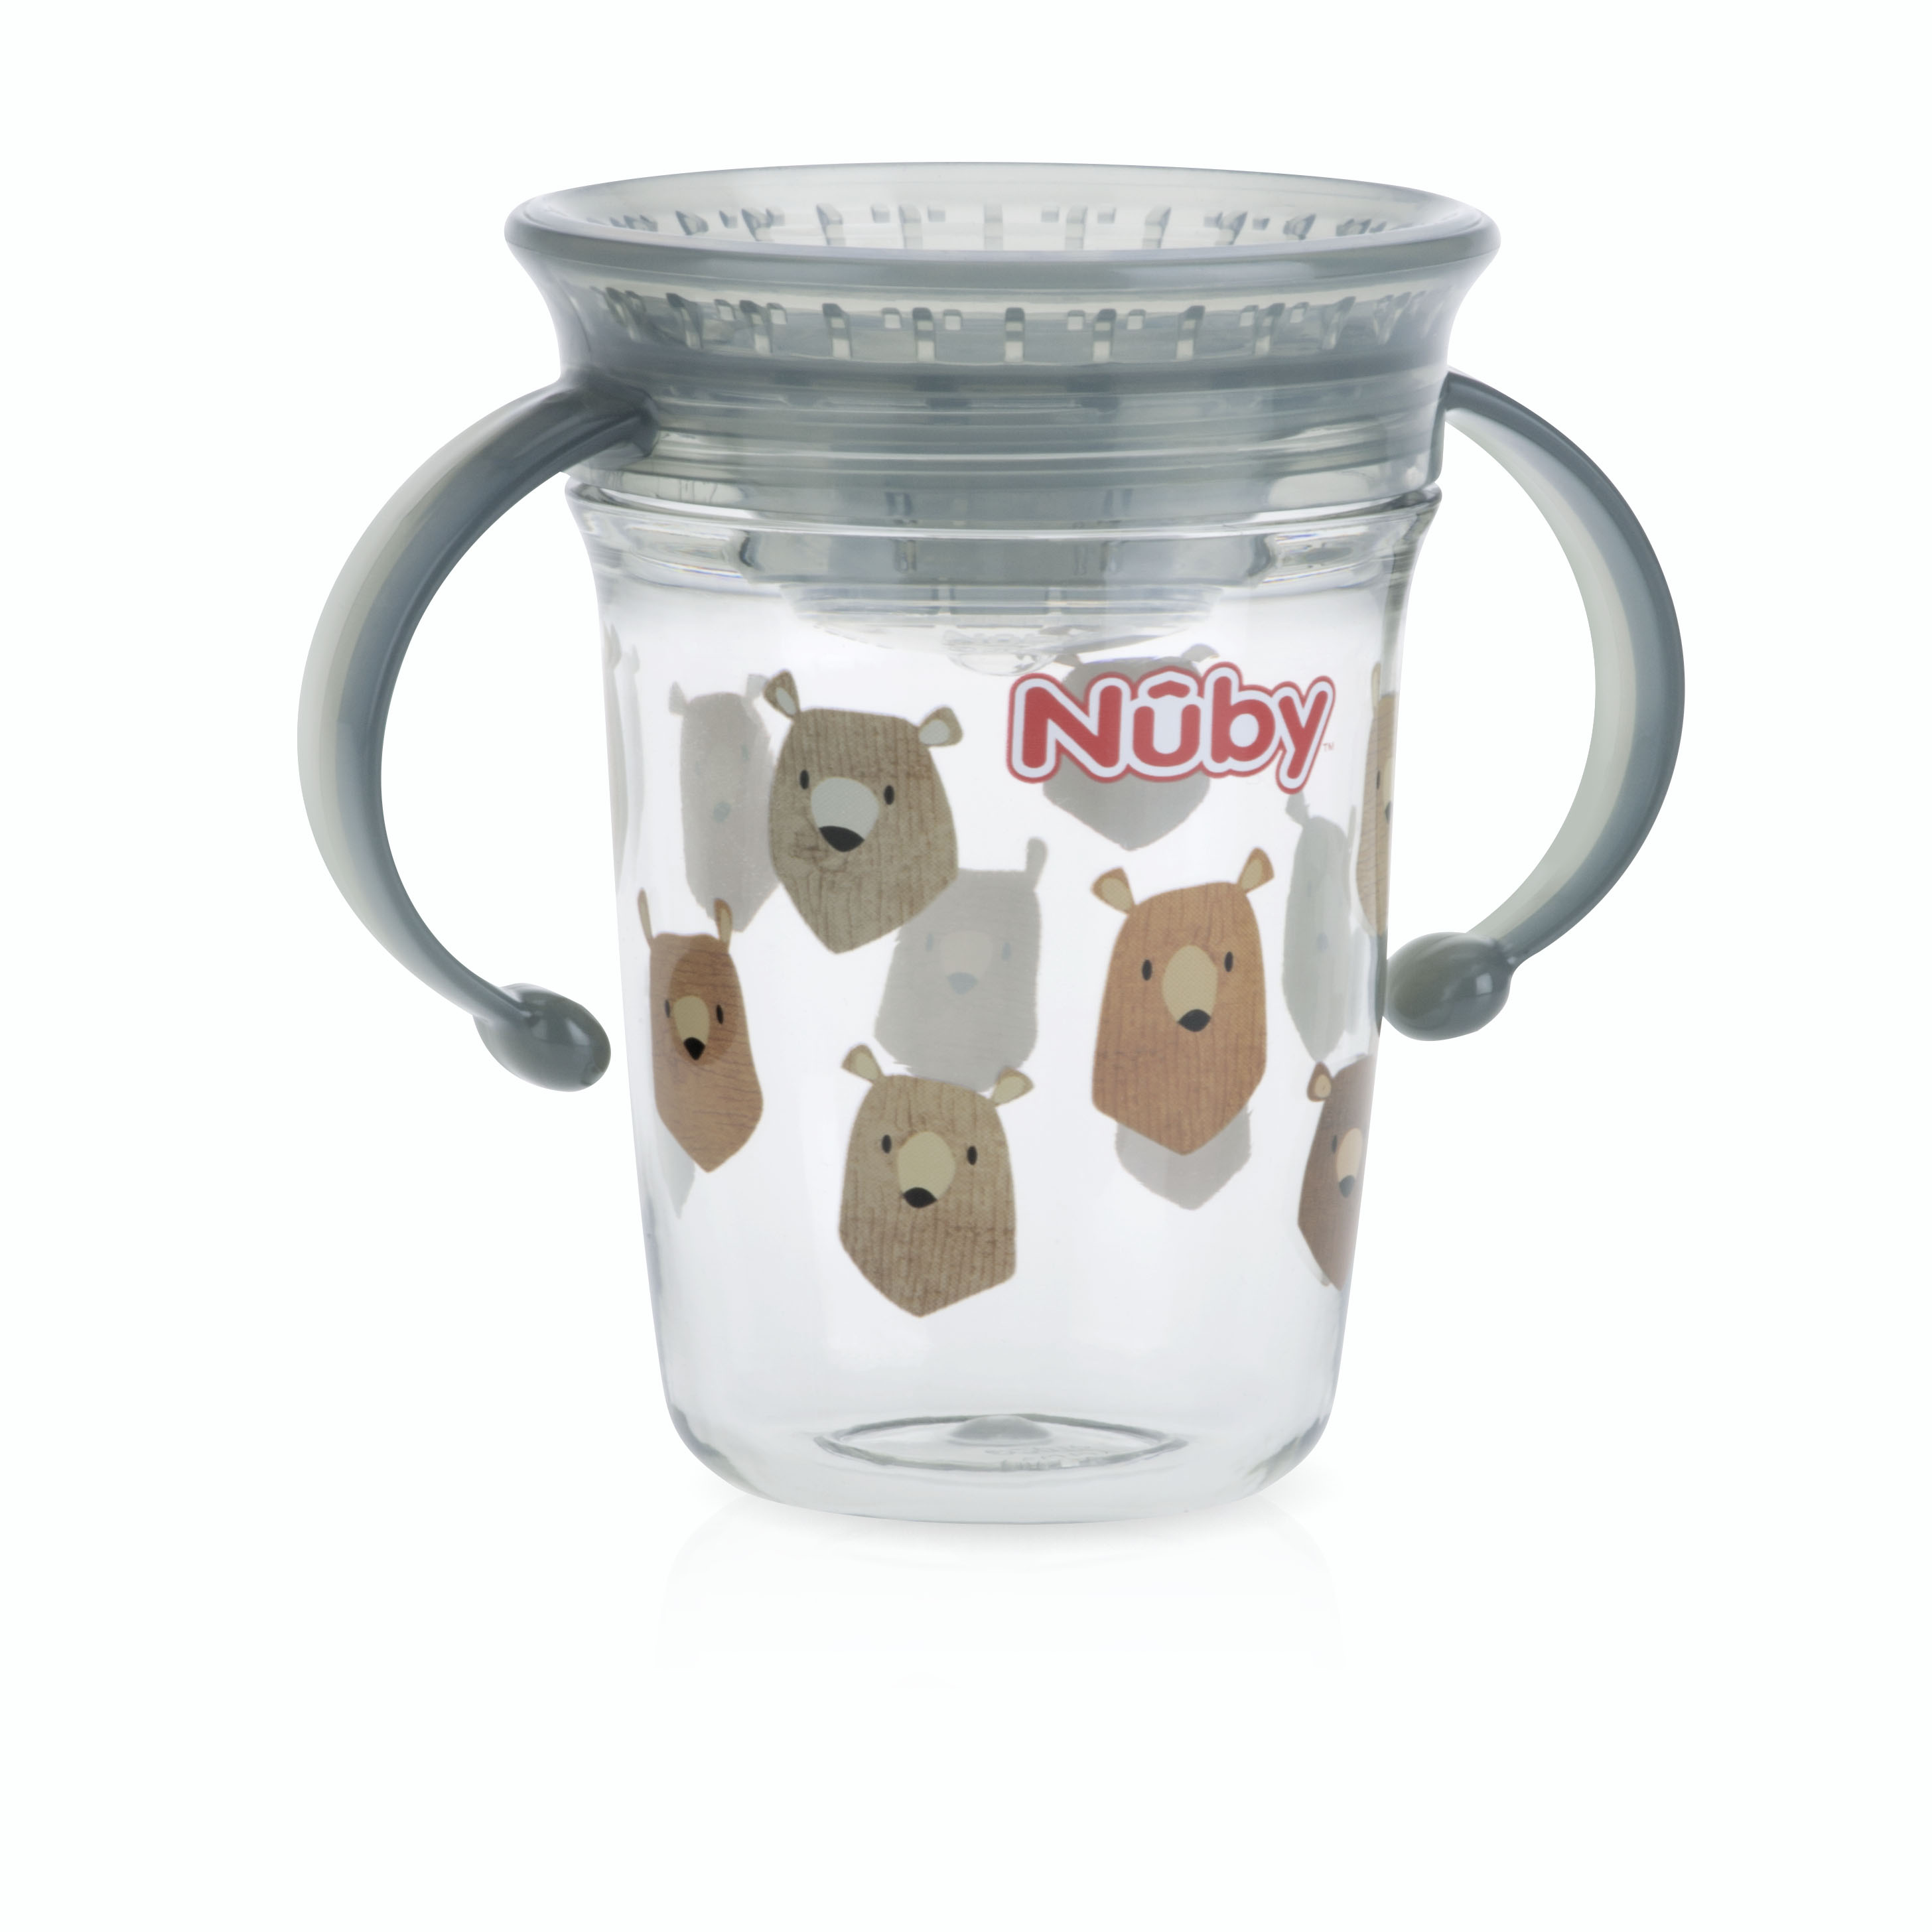 Nuby Tritan 8oz Two Handle Wonder Cup with Hygienic Cover, Bears